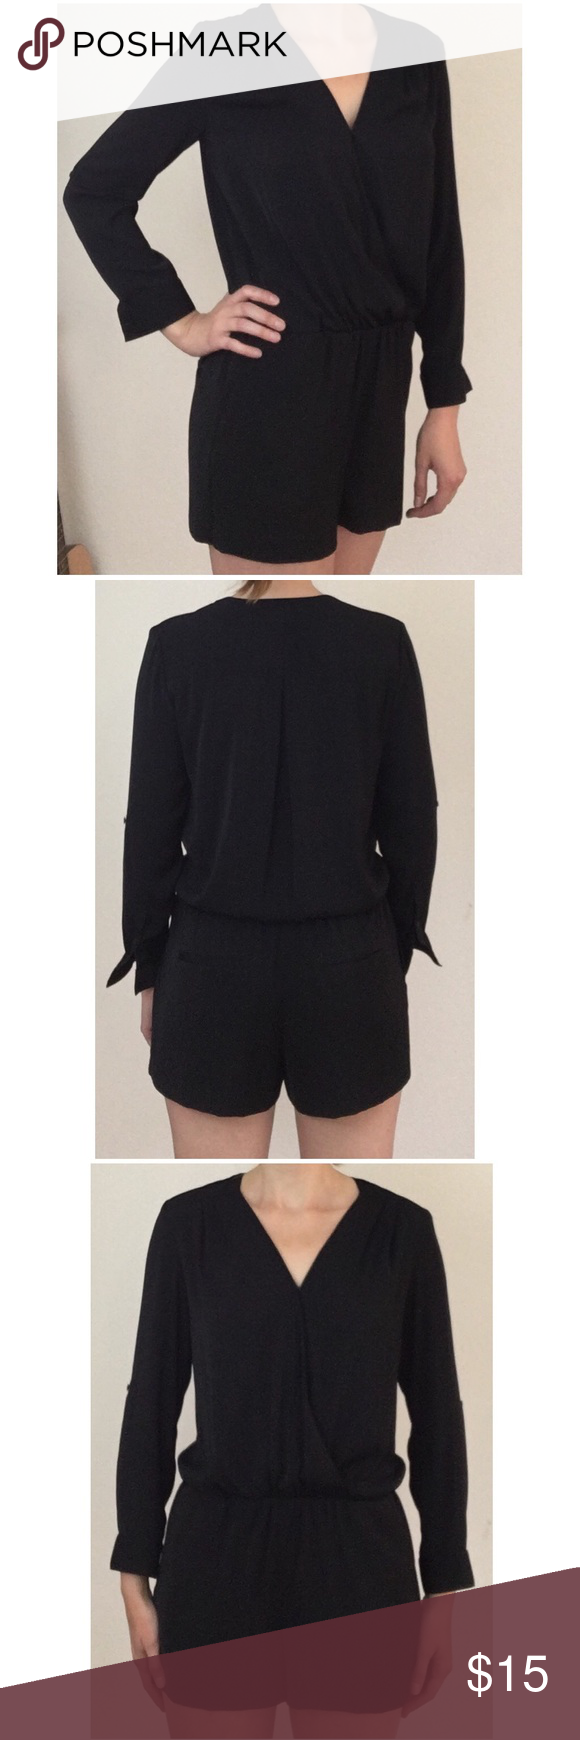 Nordstrom Black Long Sleeve Romper Trouvè black long sleeve romper WITH POCKETS! Originally from Nordstrom. Very comfortable and soft material. Sleeves can be rolled up with button to hold them. V neck with small button to close top. 100% polyester Trouve Other